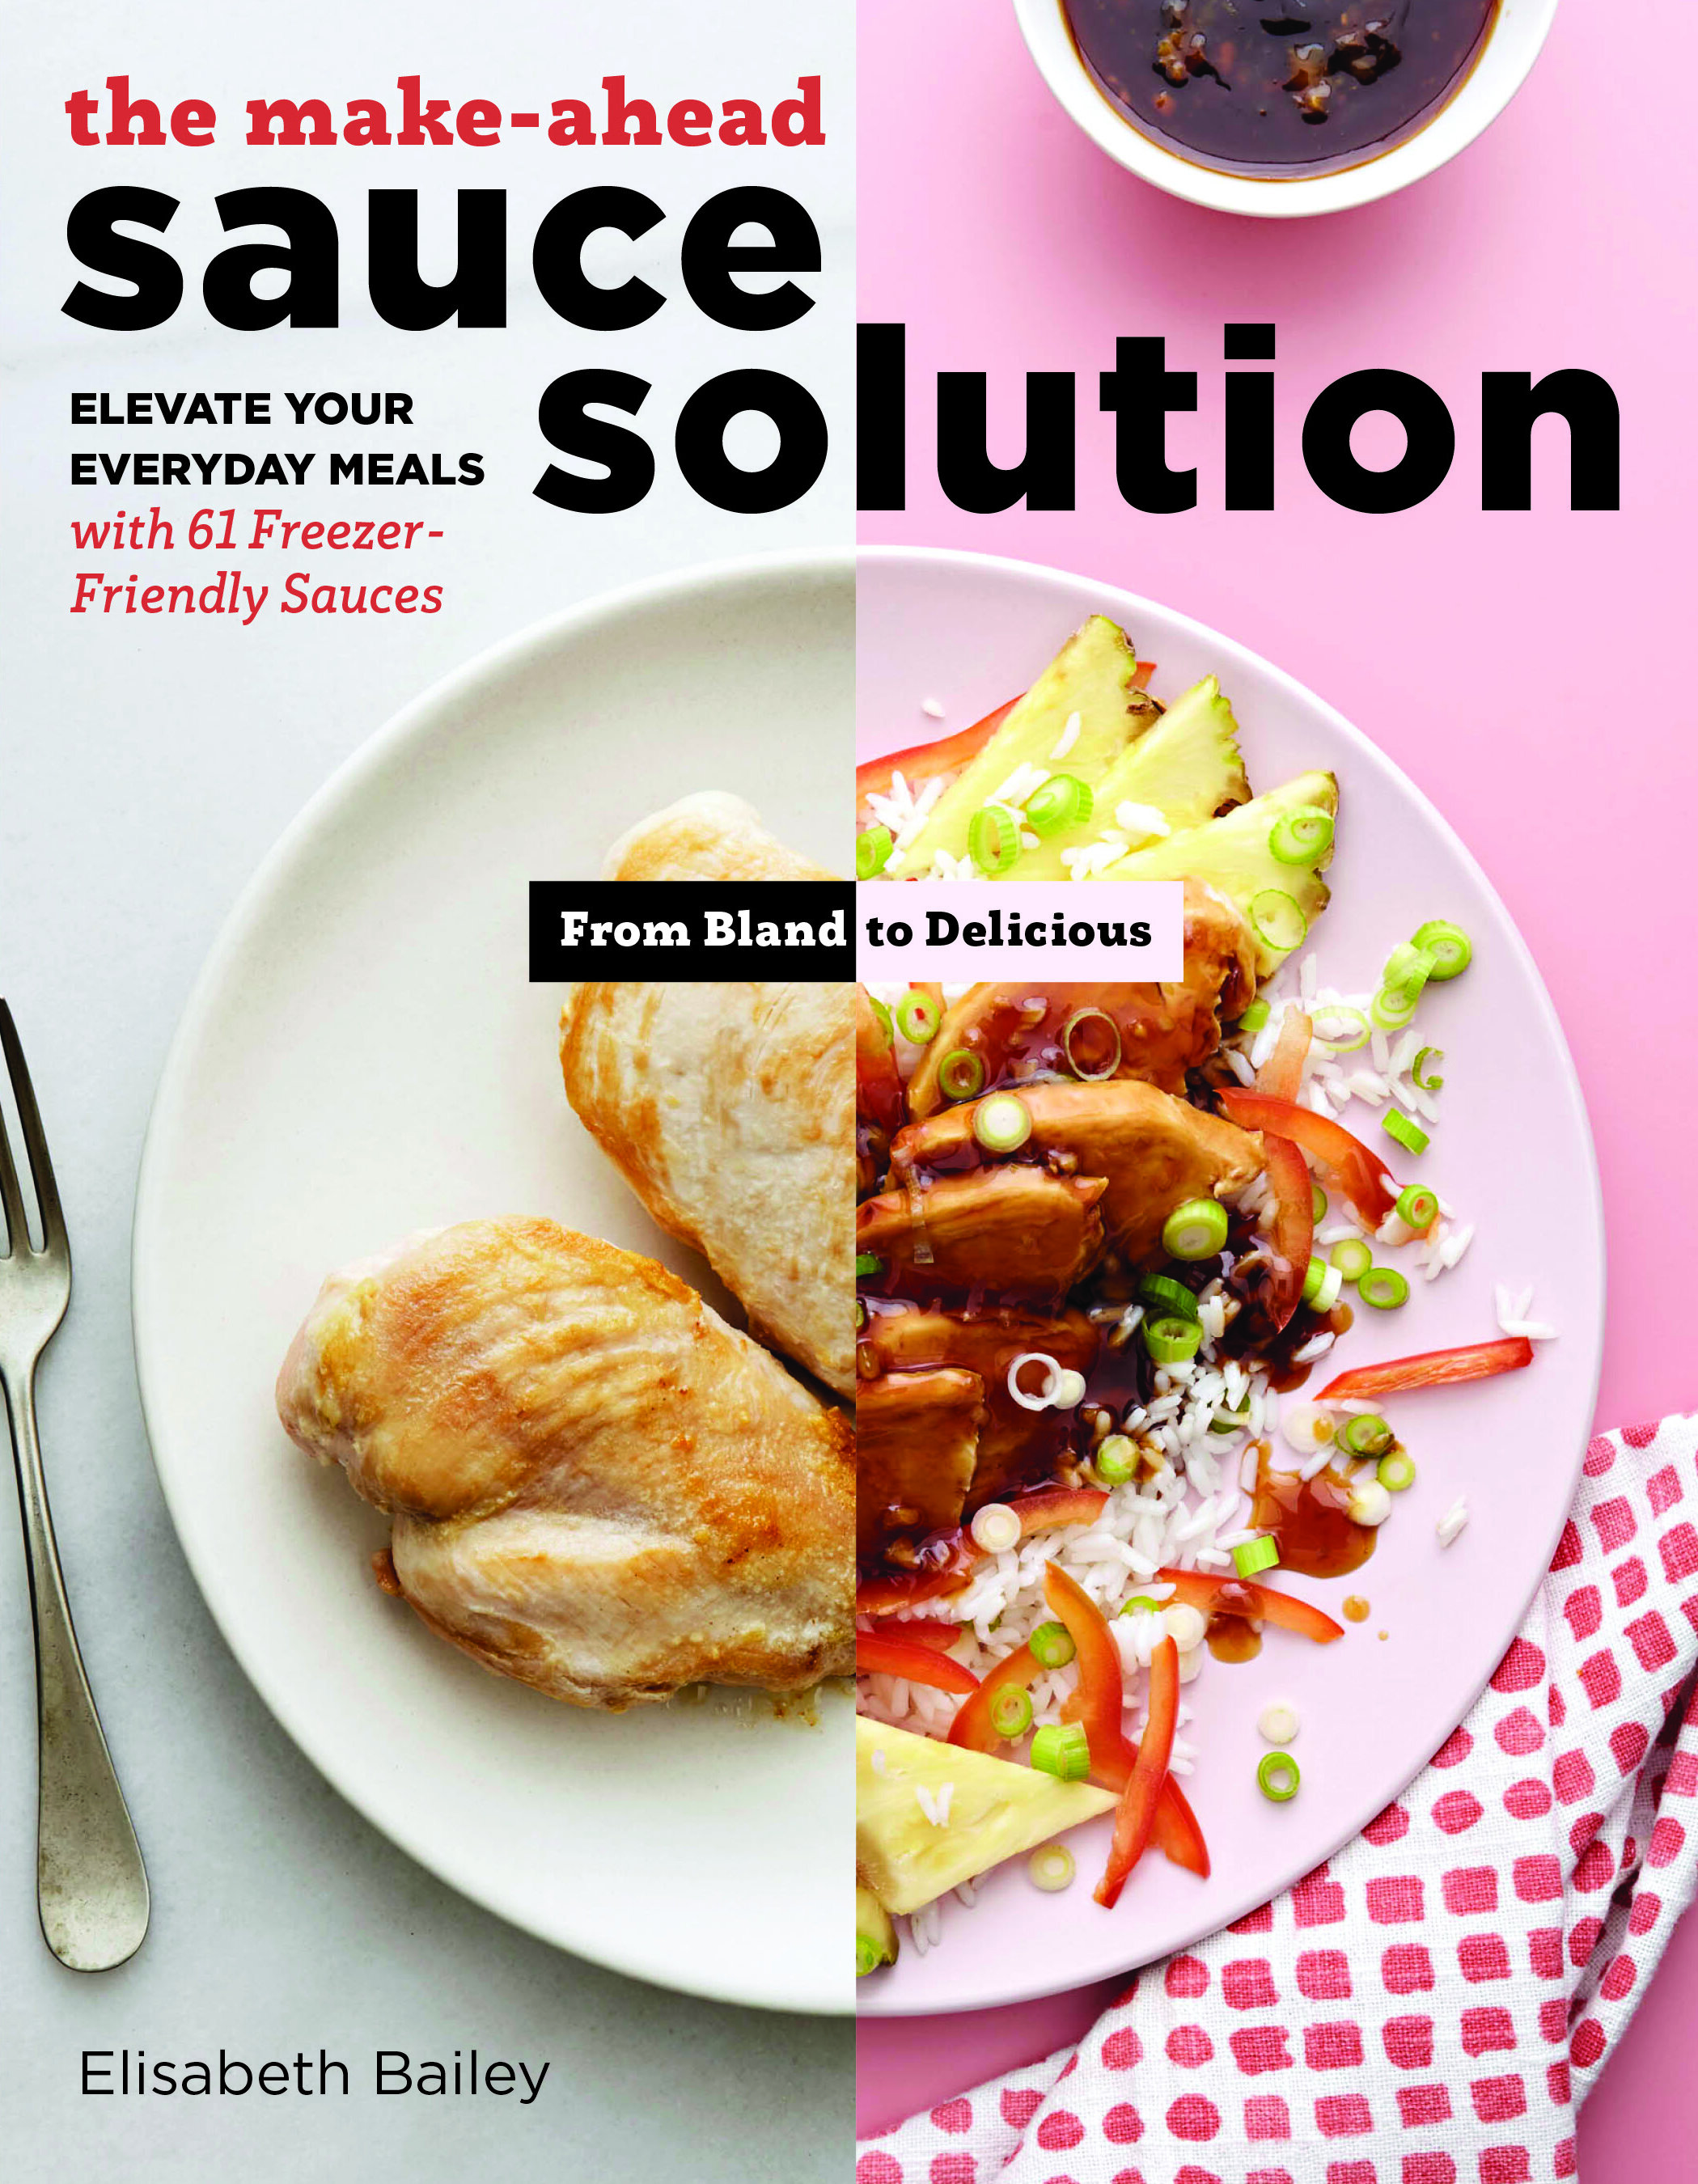 The Make-Ahead Sauce Solution cookbook by Elisabeth Bailey | Didn't I Just Feed You, a food podcast for parents (even the ones who hate to cook)